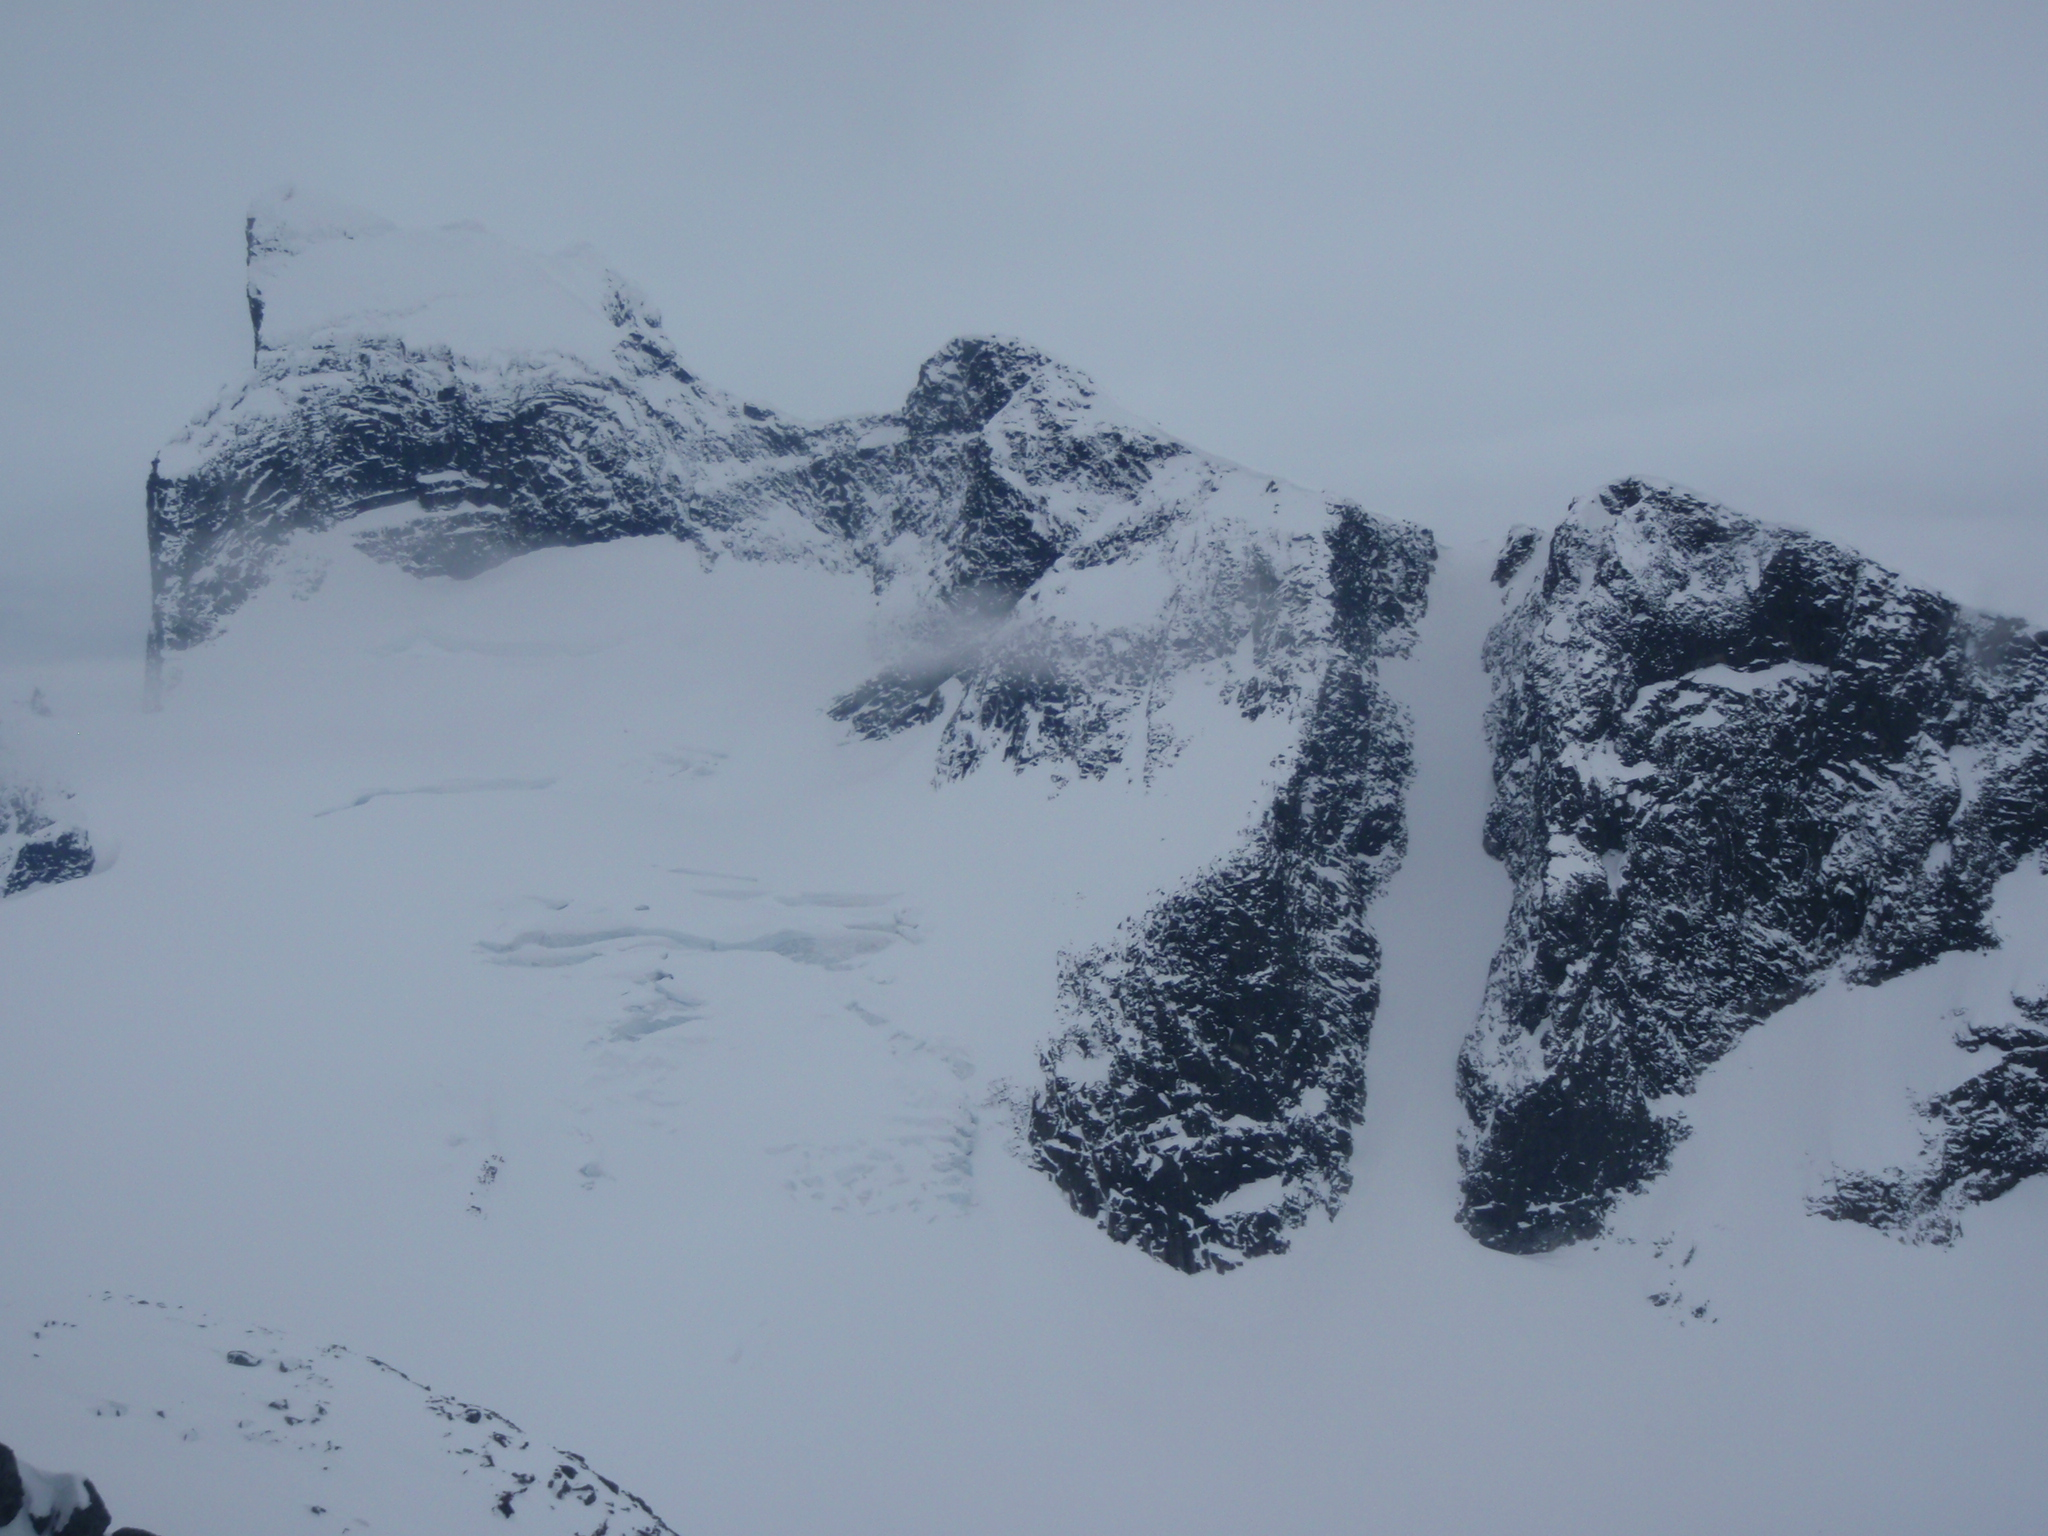 Store Austabottind (2202m) on far left and the North couloir